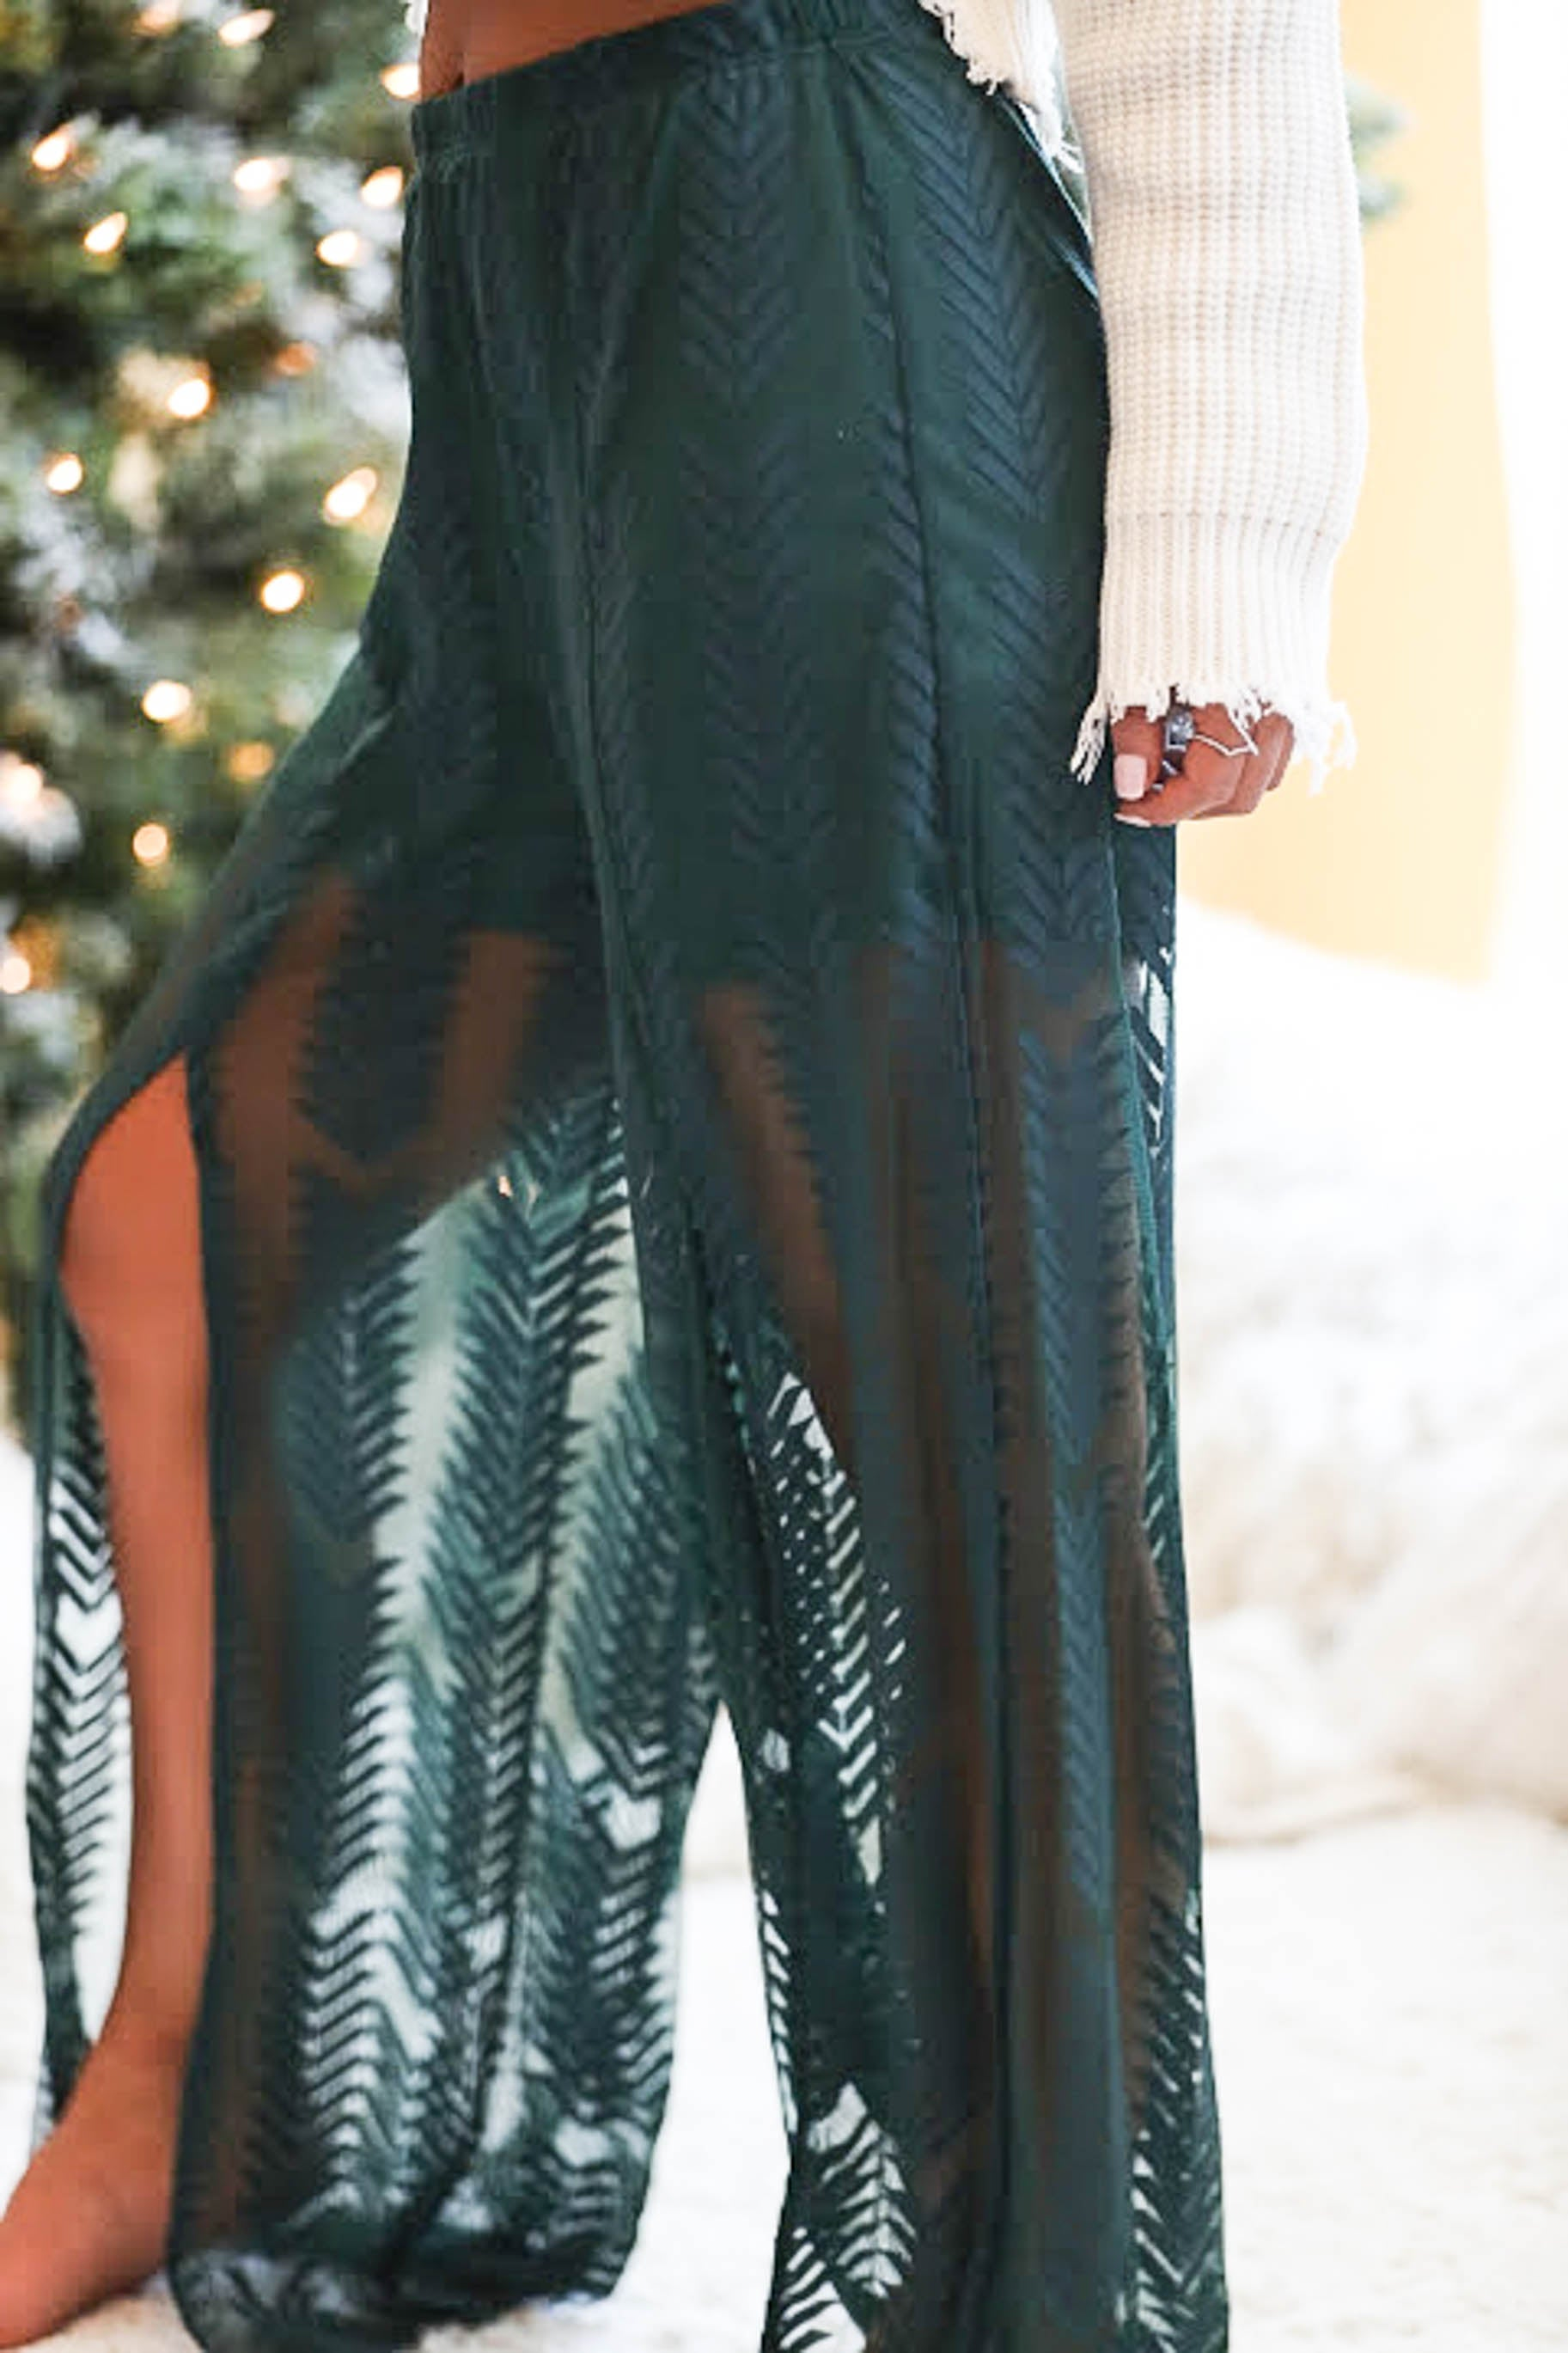 Falling Leaves Mesh Pants - The Flawless Babe Boutique